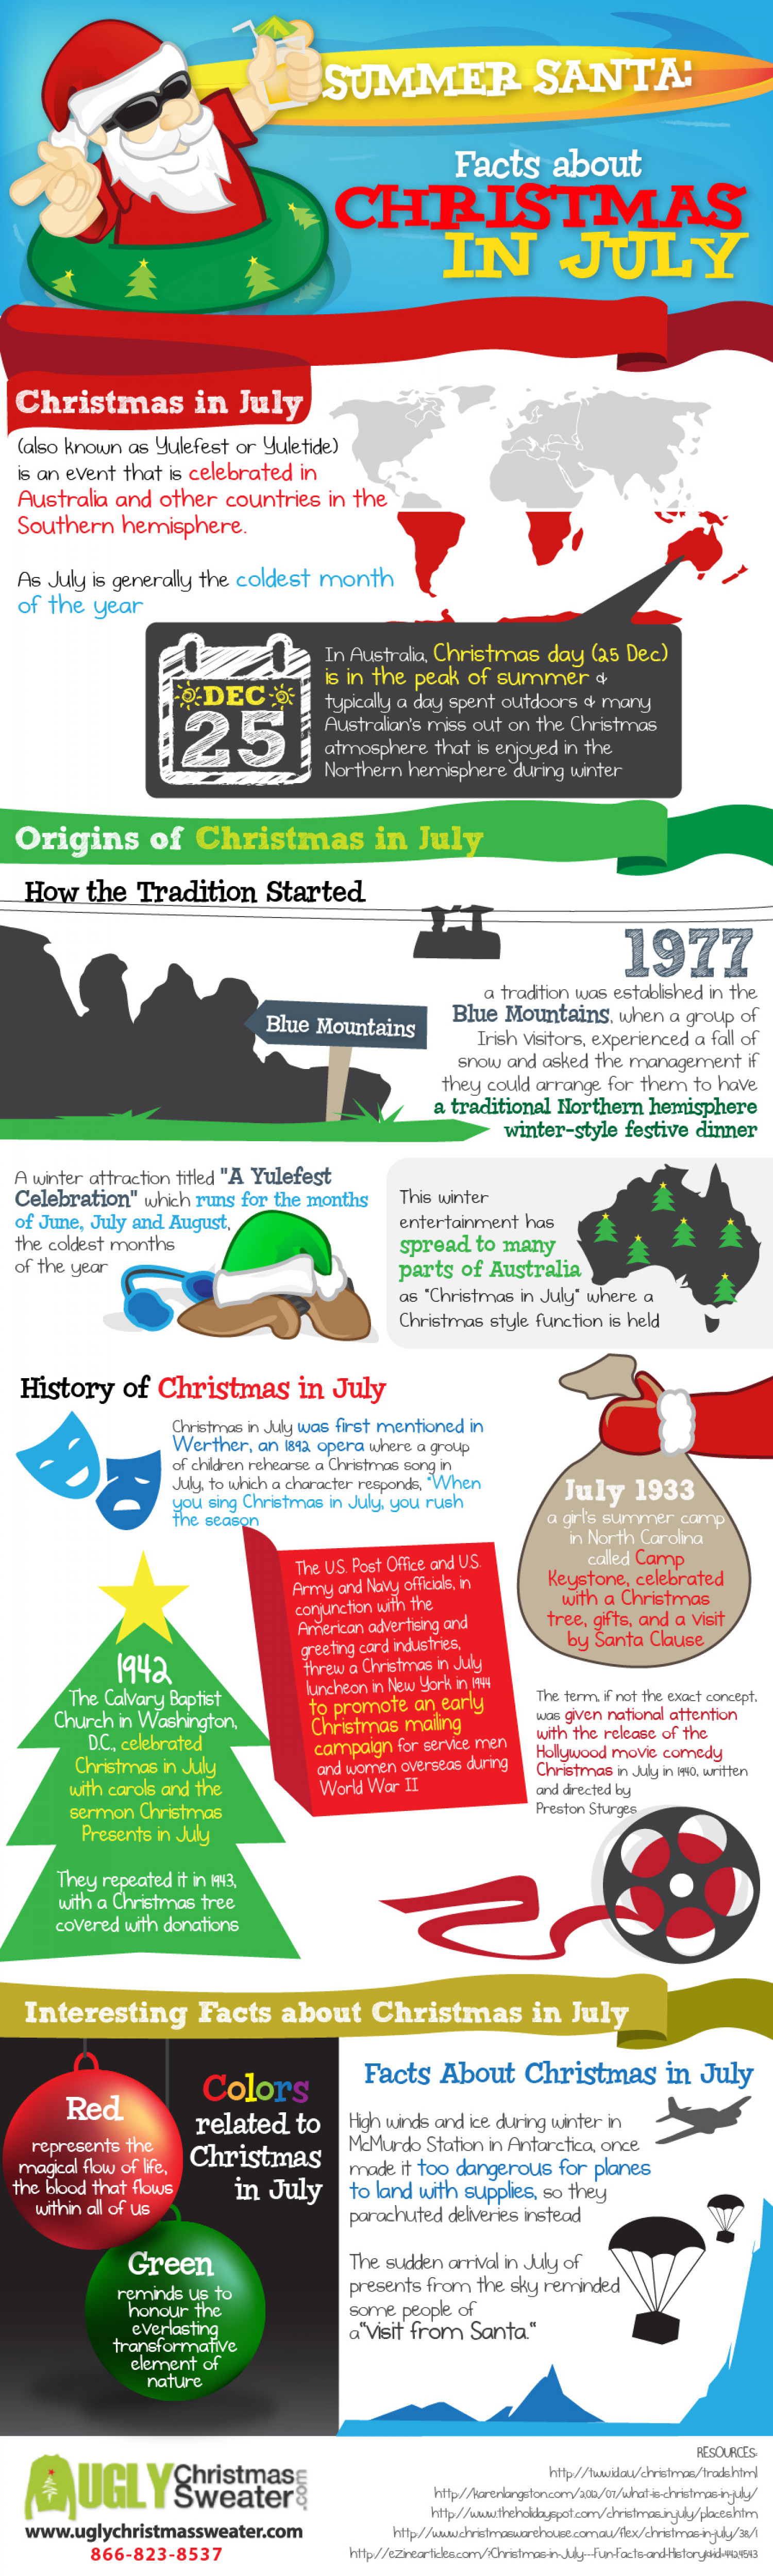 Summer Santa: Facts about Christmas in July Infographic